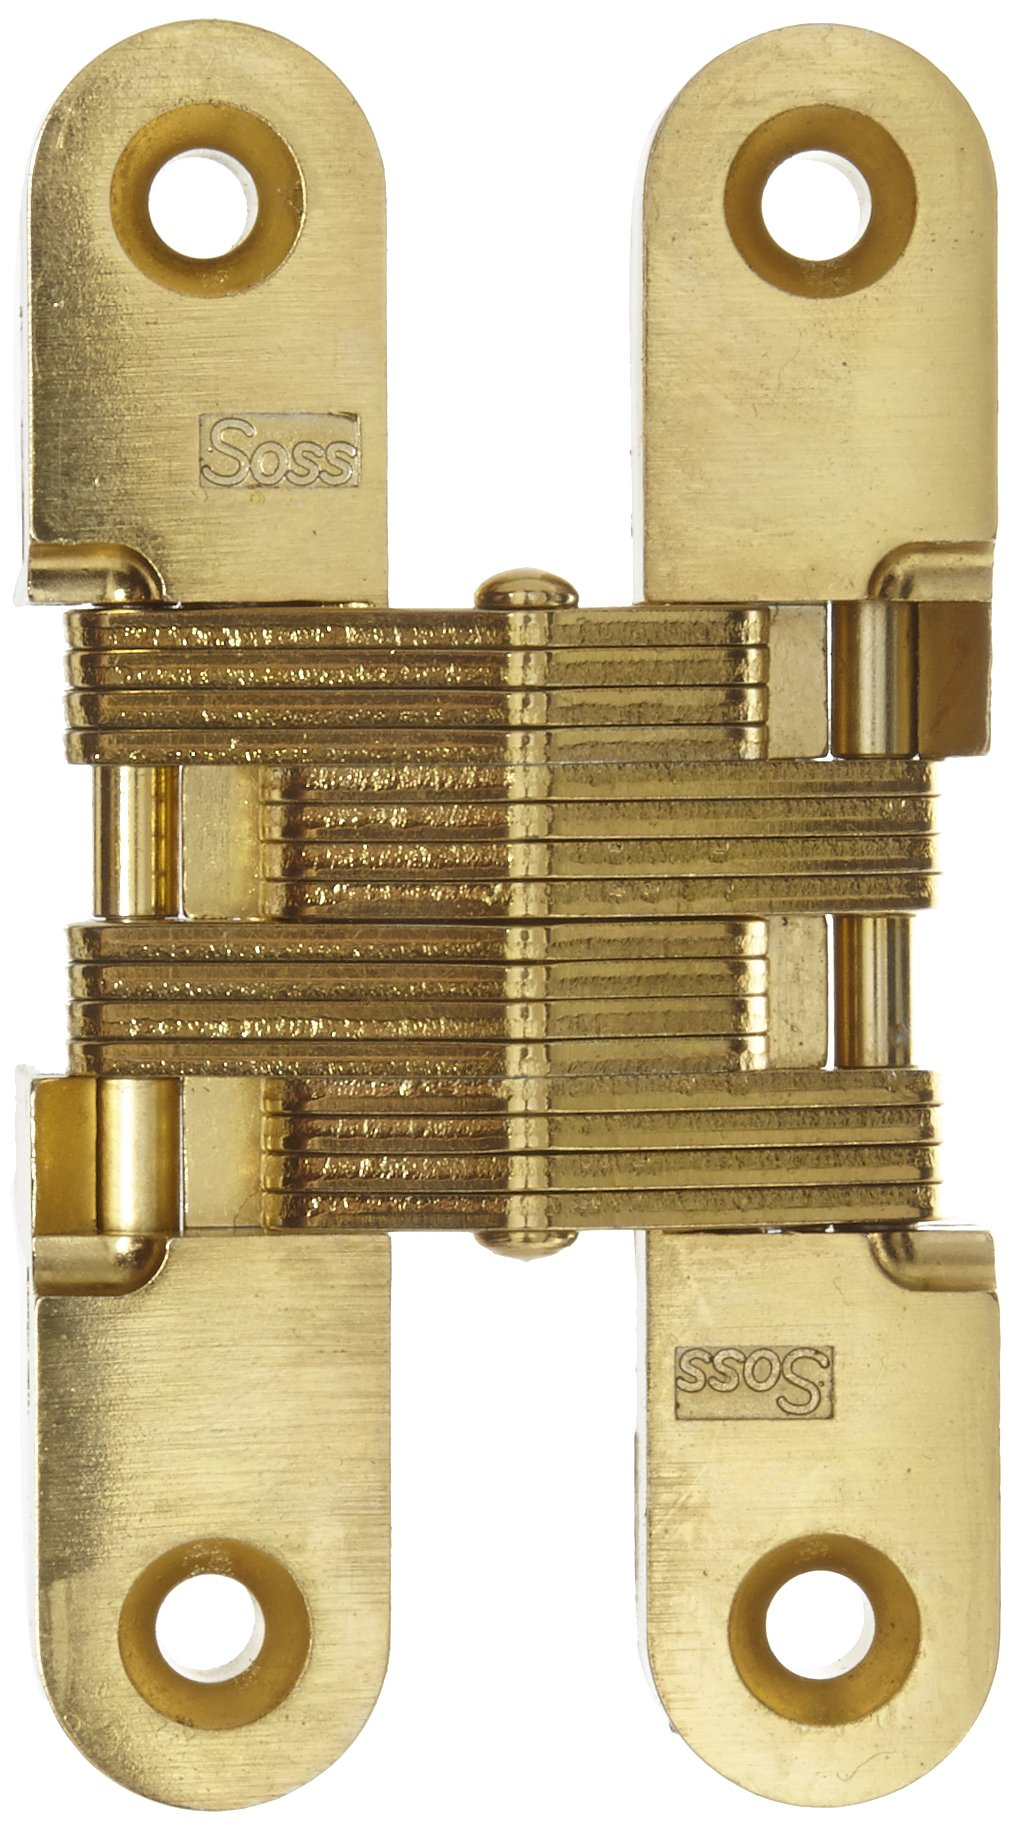 SOSS Mortise Mount Invisible Hinge with 4 Holes, Zinc, Satin Brass Finish, 3-3/4'' Leaf Height, 3/4'' Leaf Width, 1-5/64'' Leaf Thickness, 10 x 1-1/4'' Screw Size